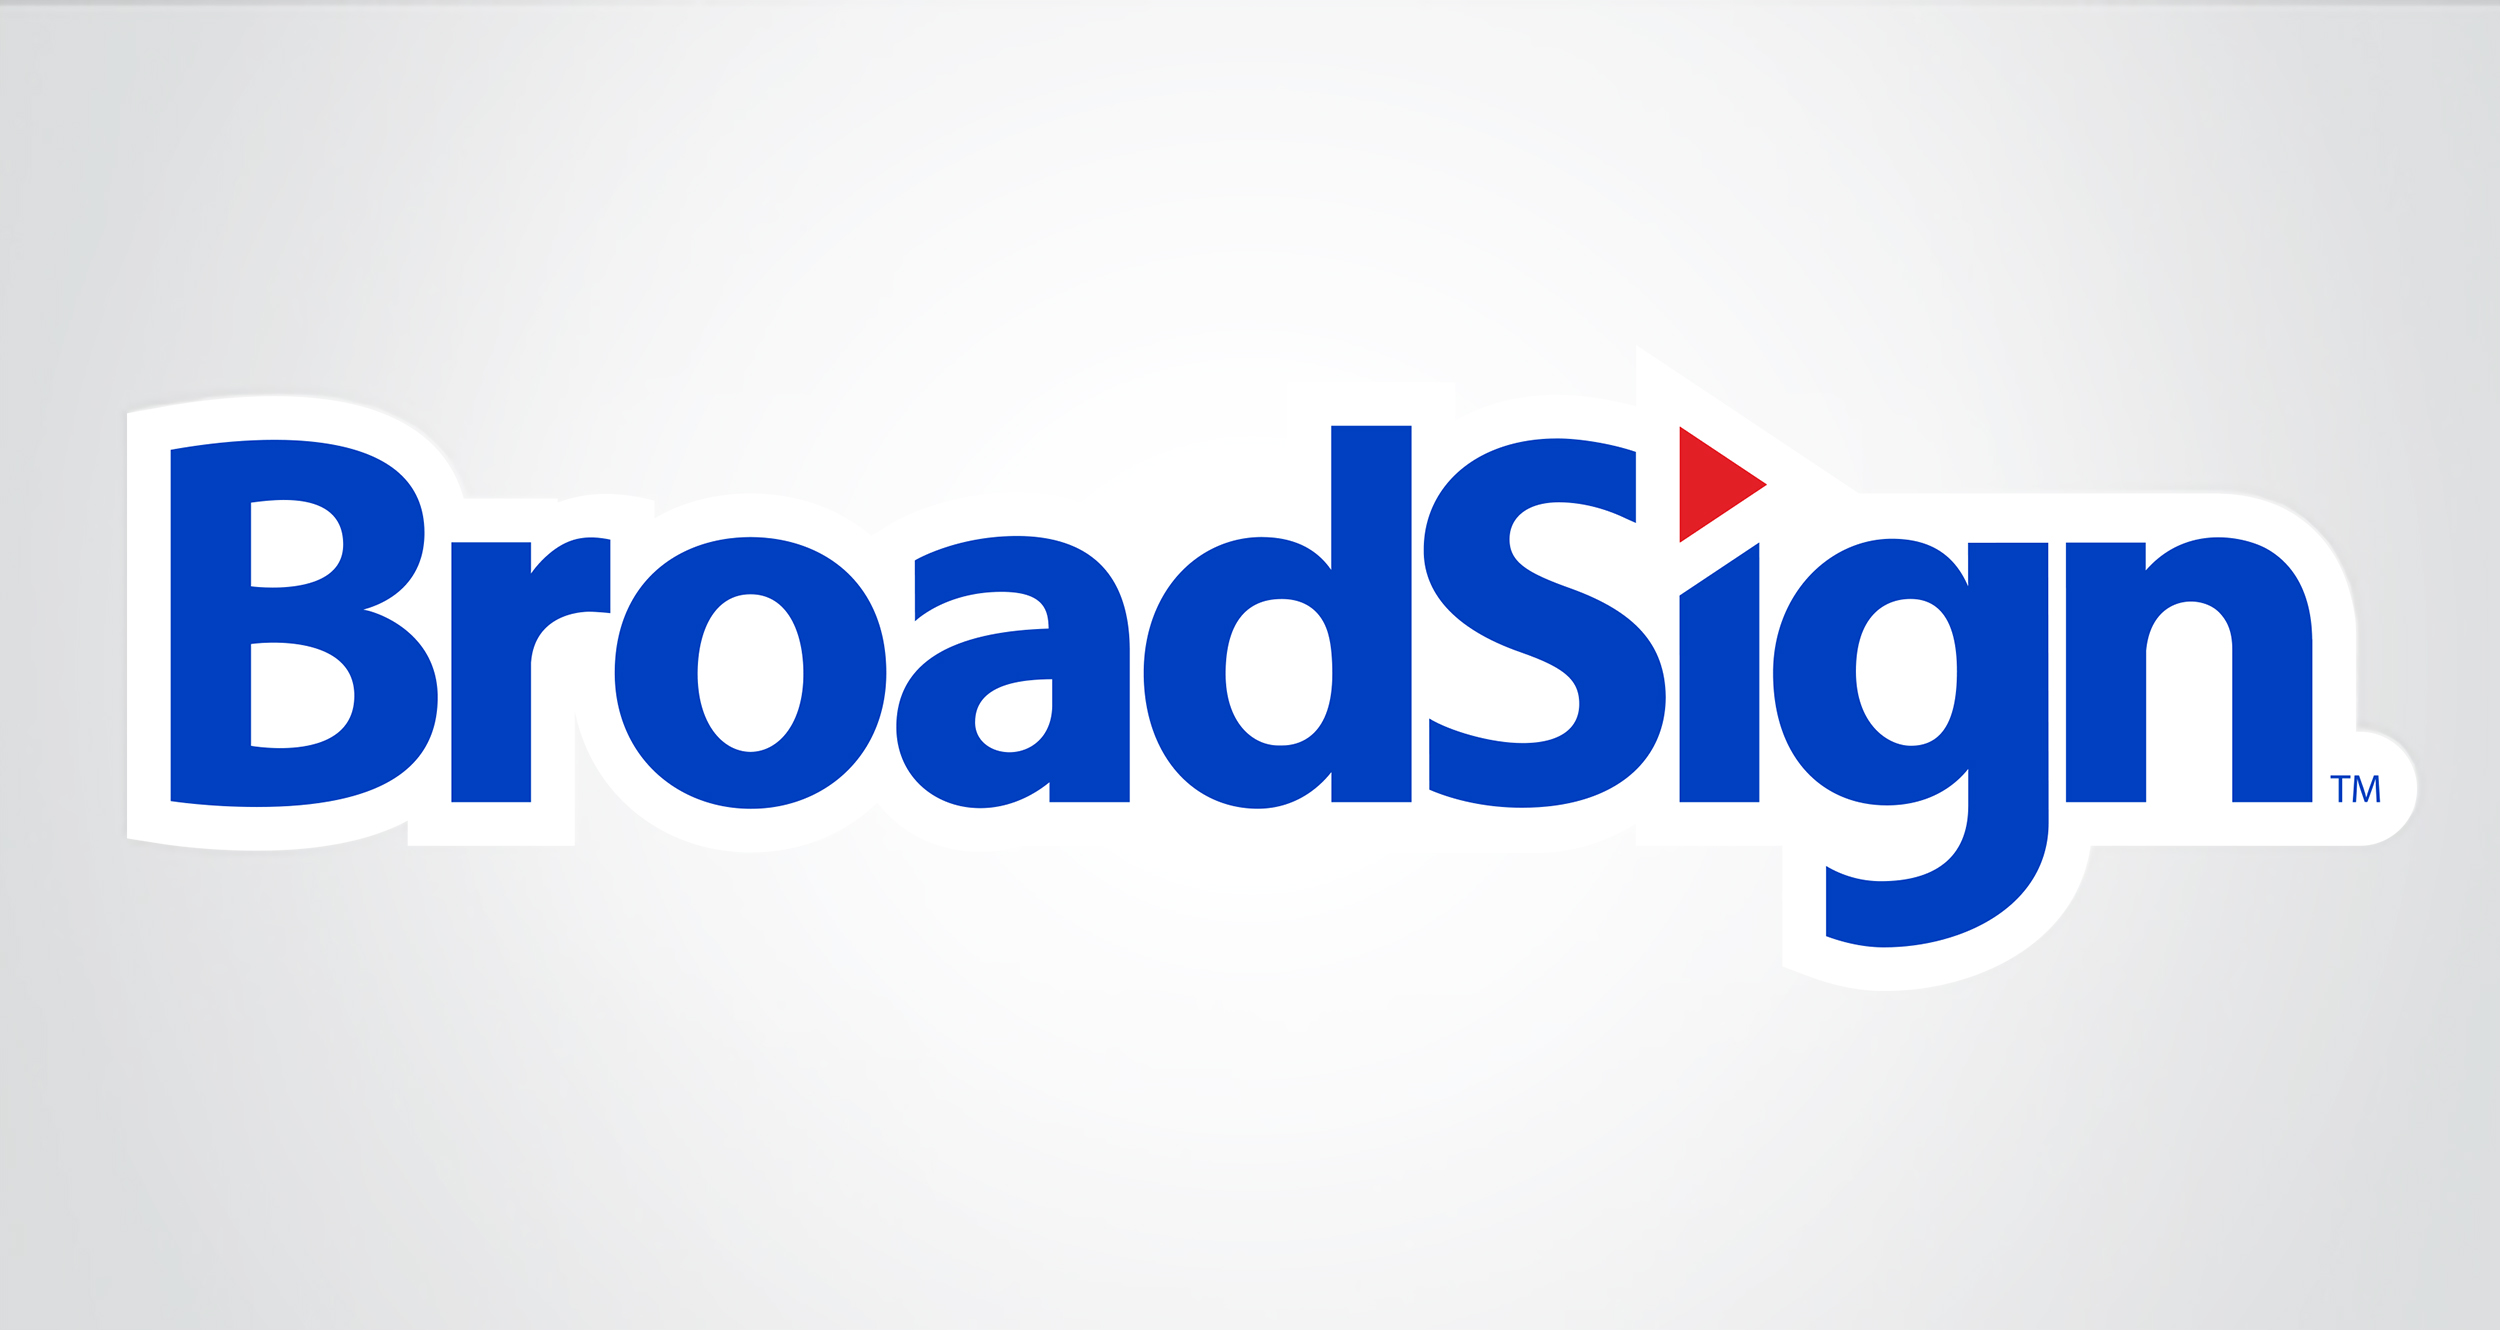 broadsign-image-2